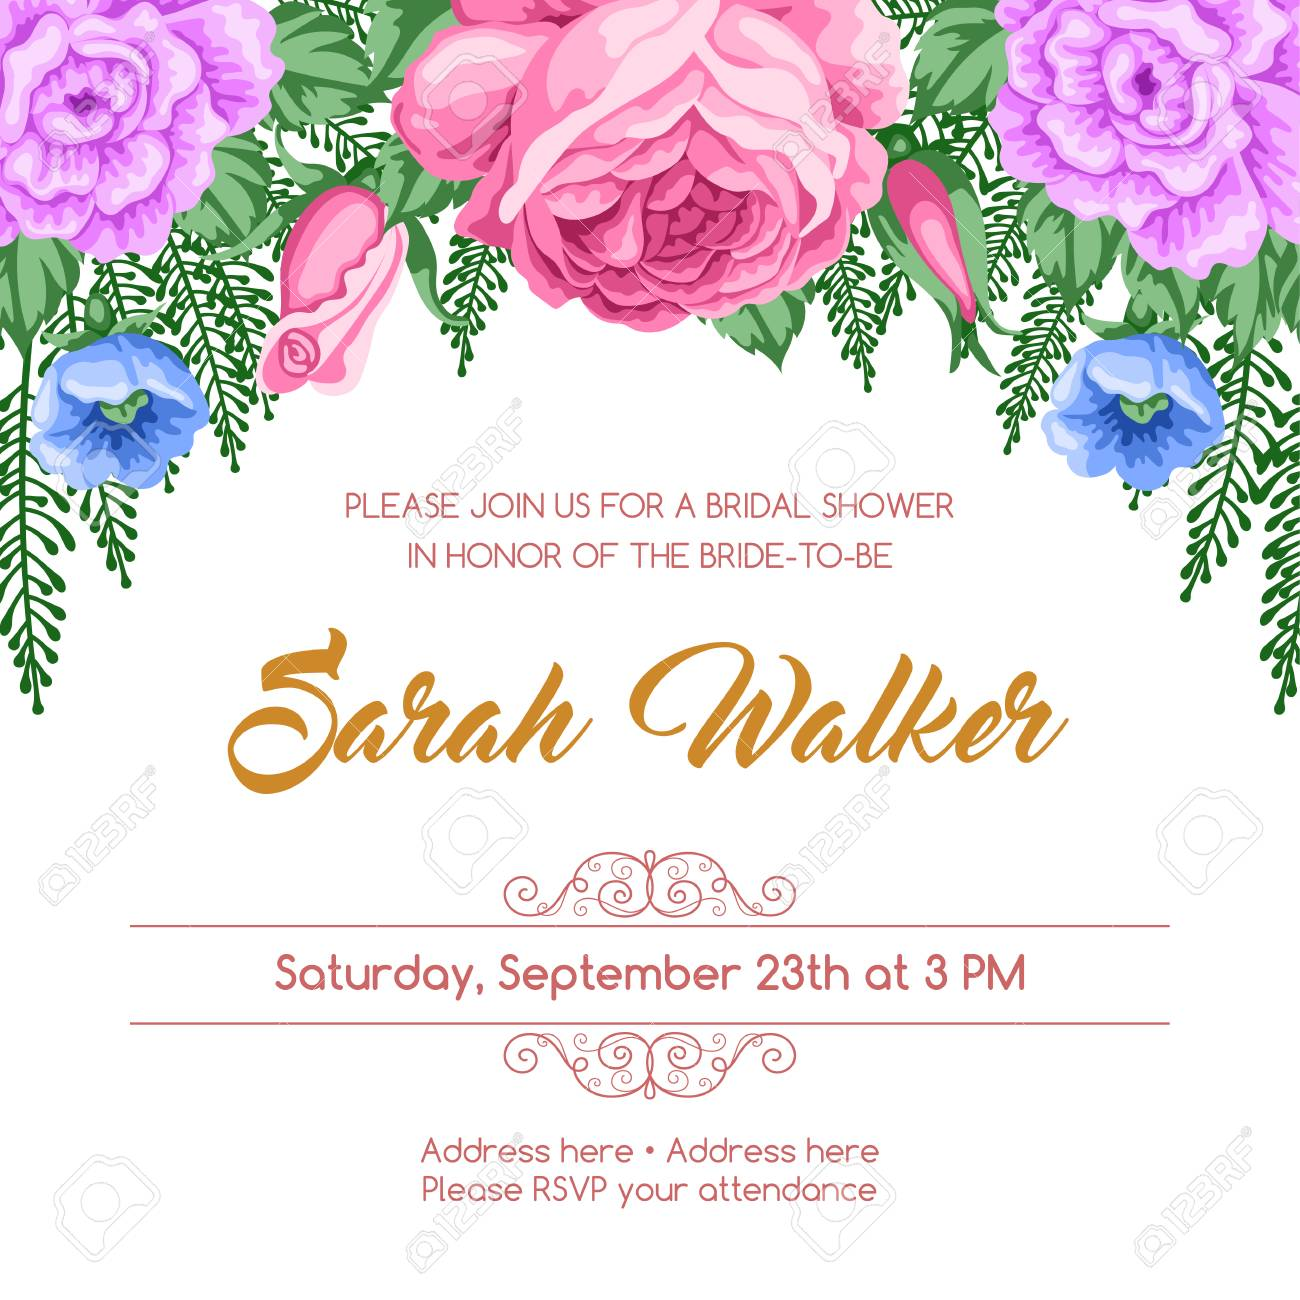 Bridal Shower Invitation Template With Flowers Vector Illustration